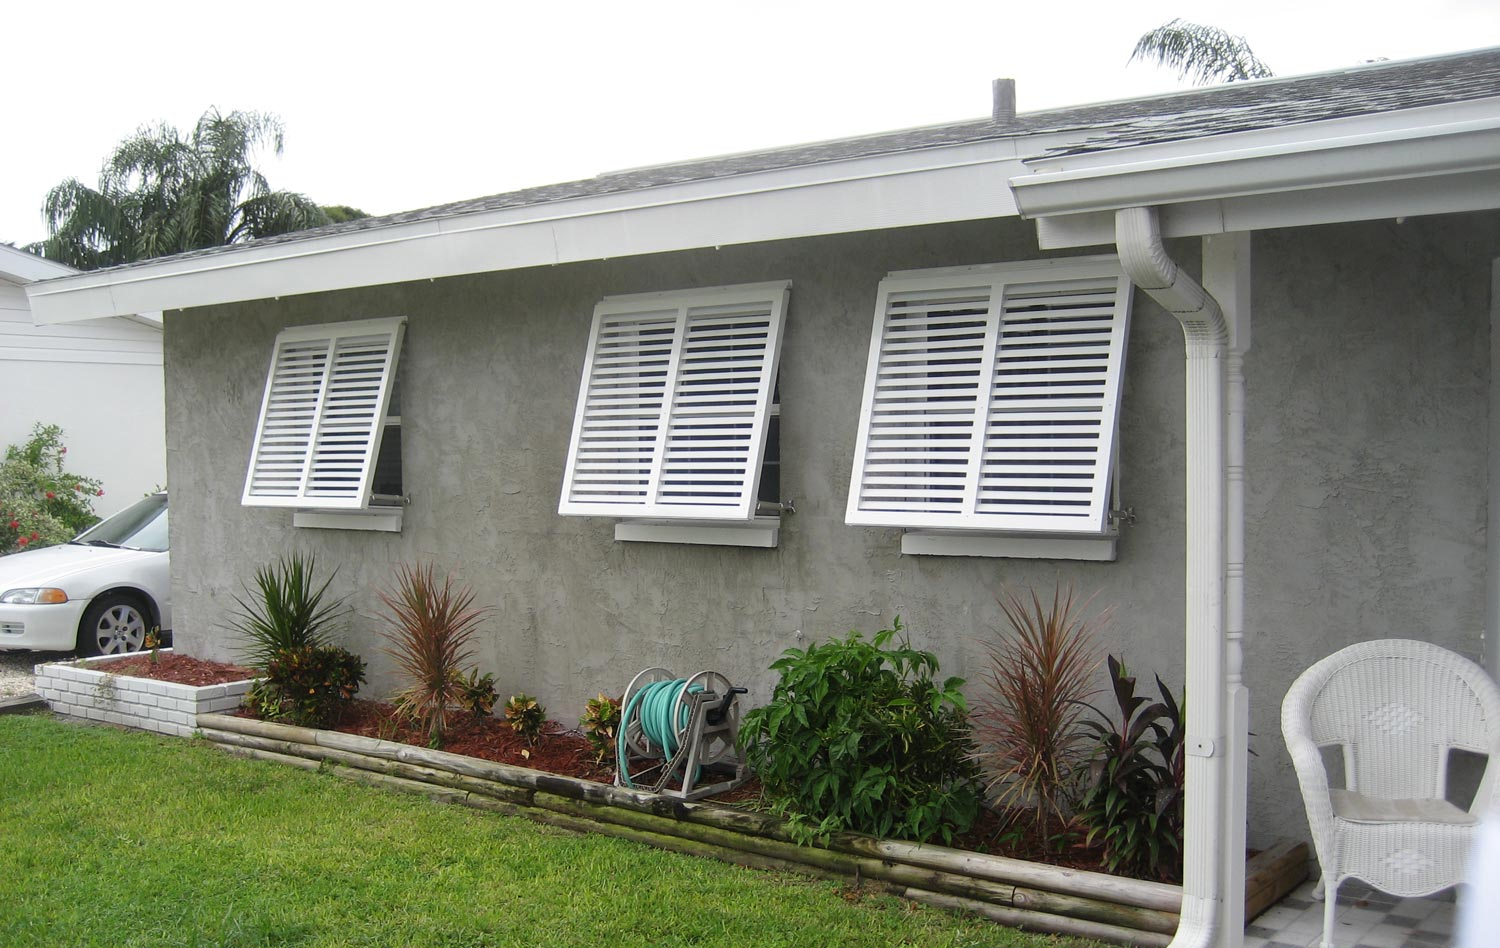 Bahama awnings 28 images sunbelt shutters bahama for Bahama shutter plans